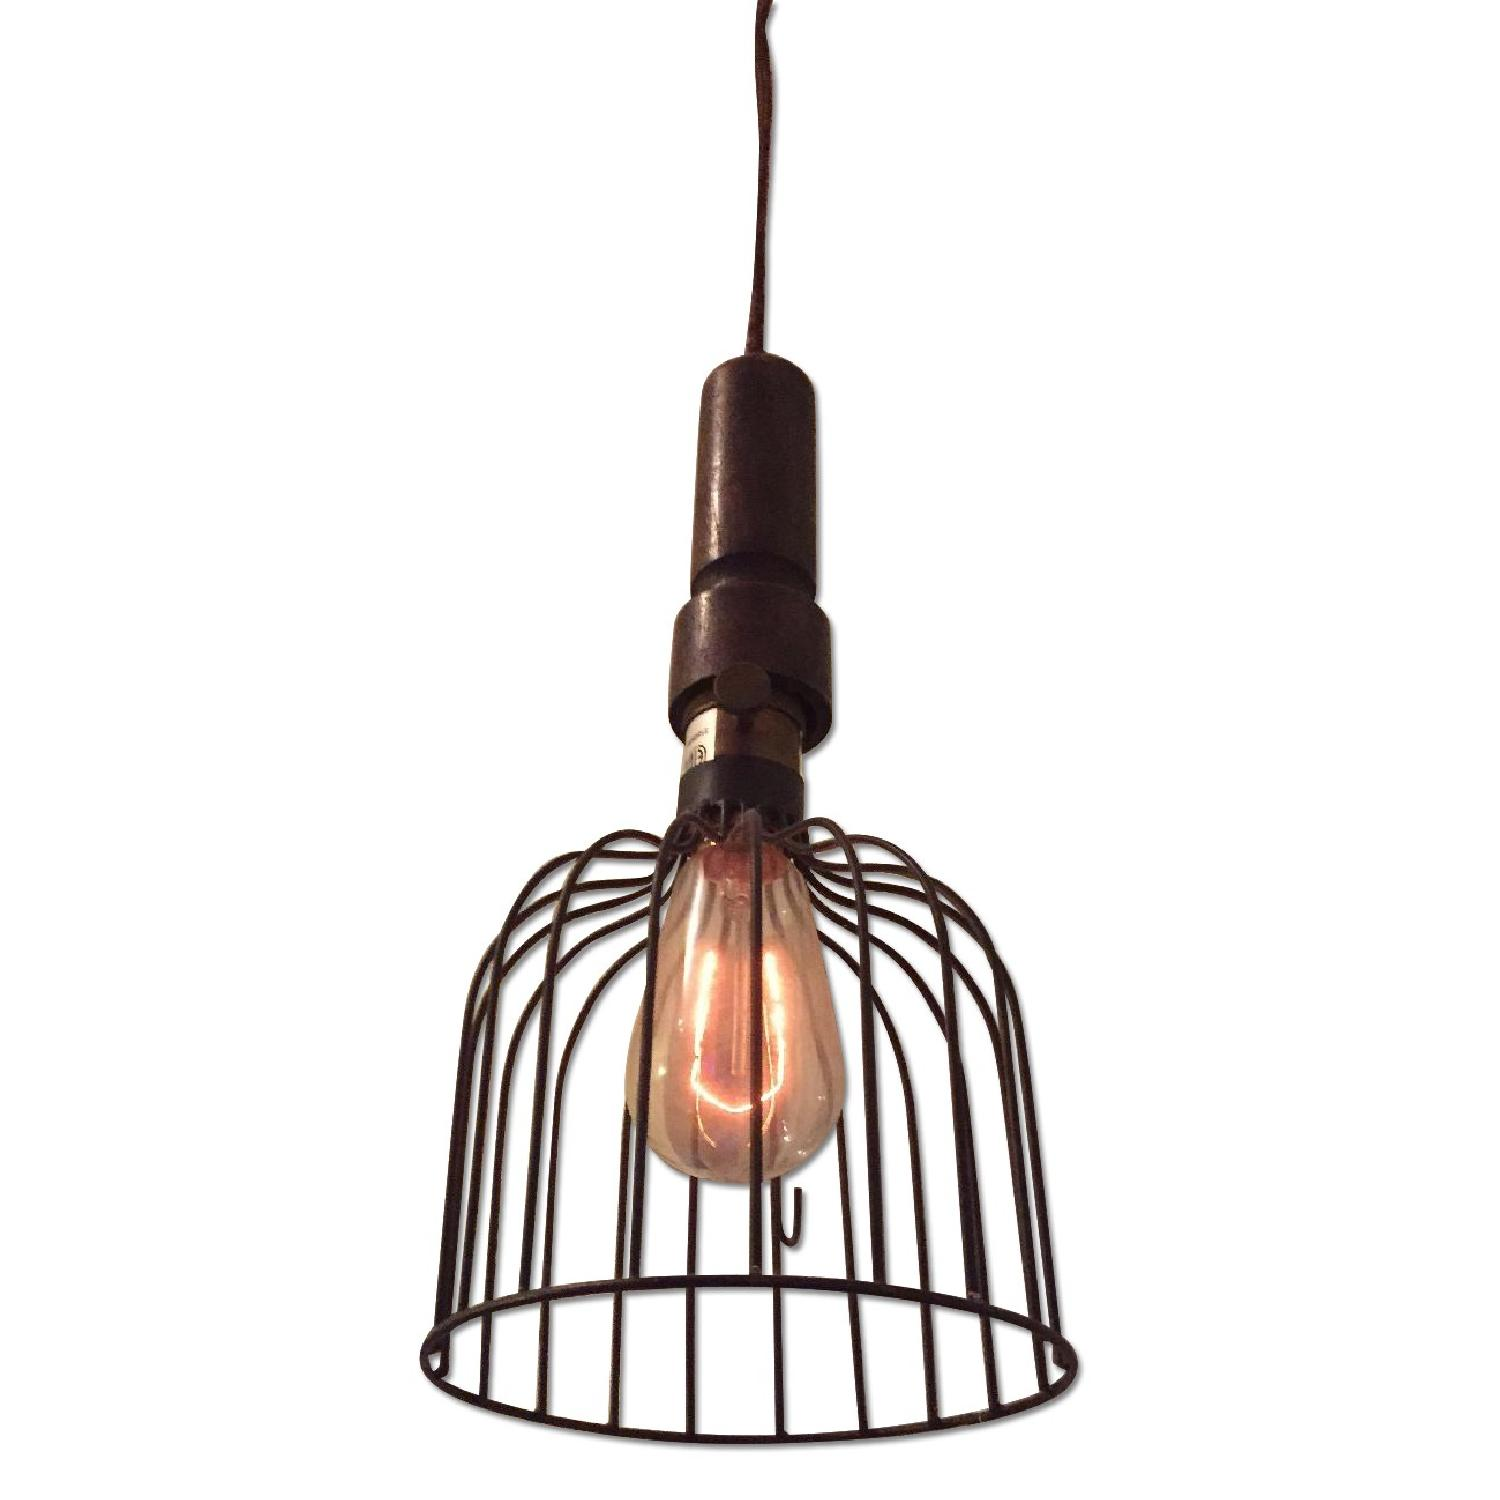 Pottery Barn Hanging Cage Light w/ Edison Bulb - image-0